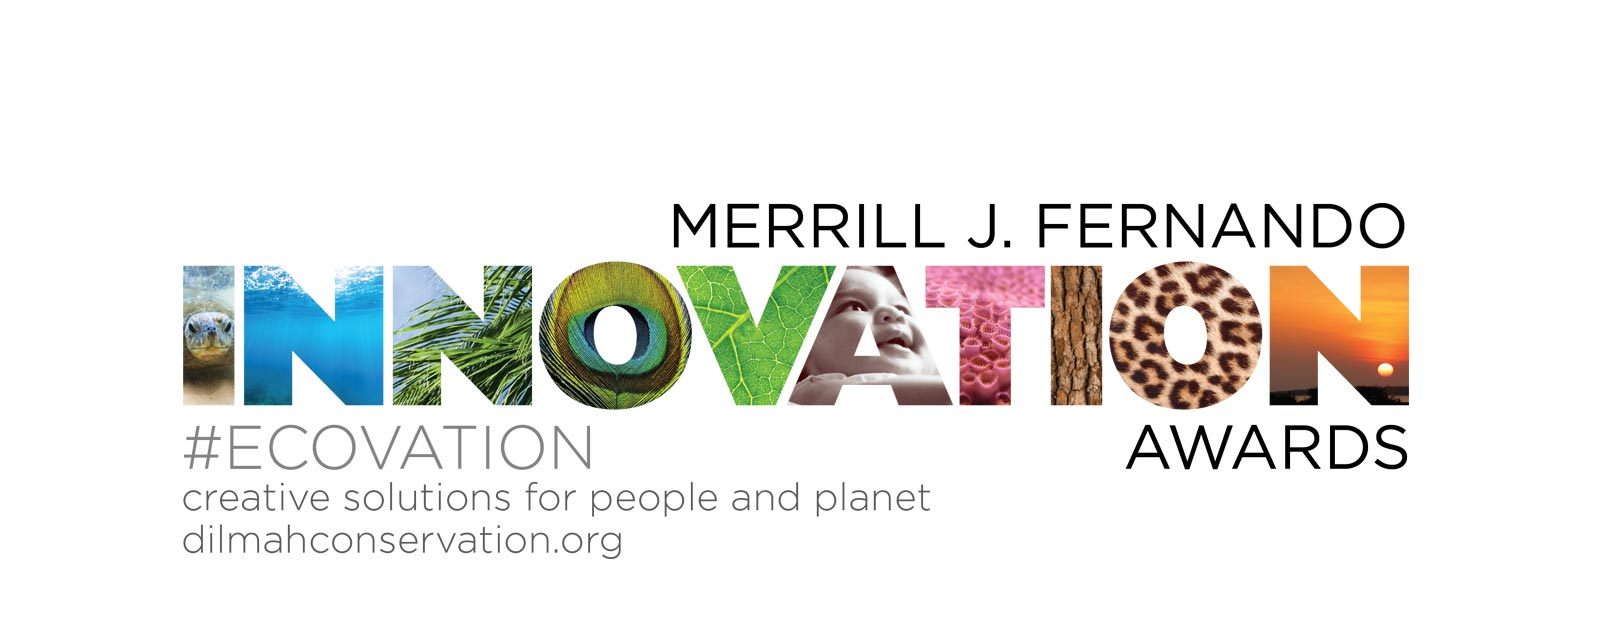 Merrill J Fernando Award for Eco-Innovation